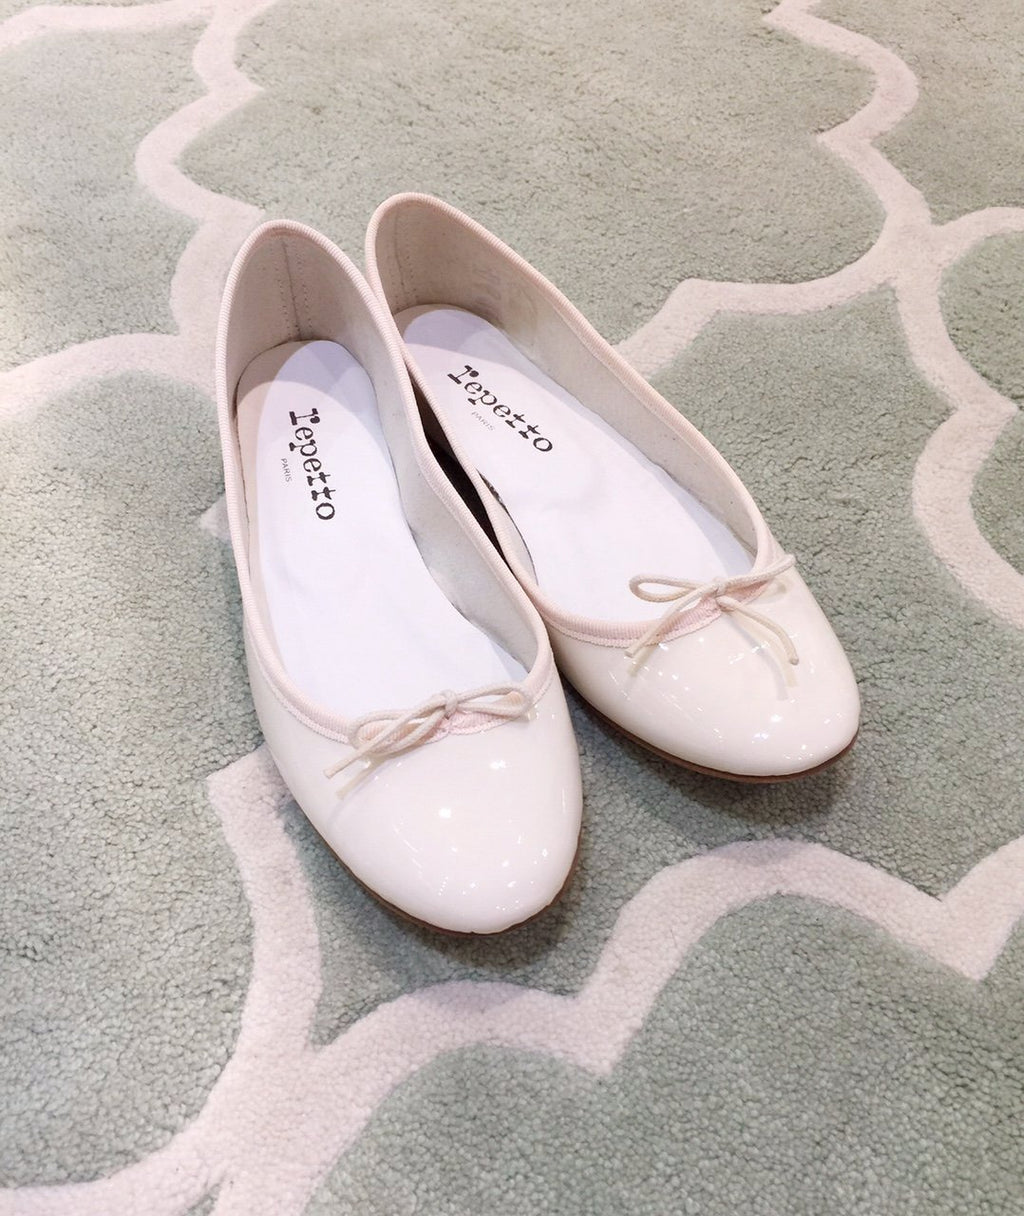 Repetto Paris - Cendrillon Ballet Flats Cream White